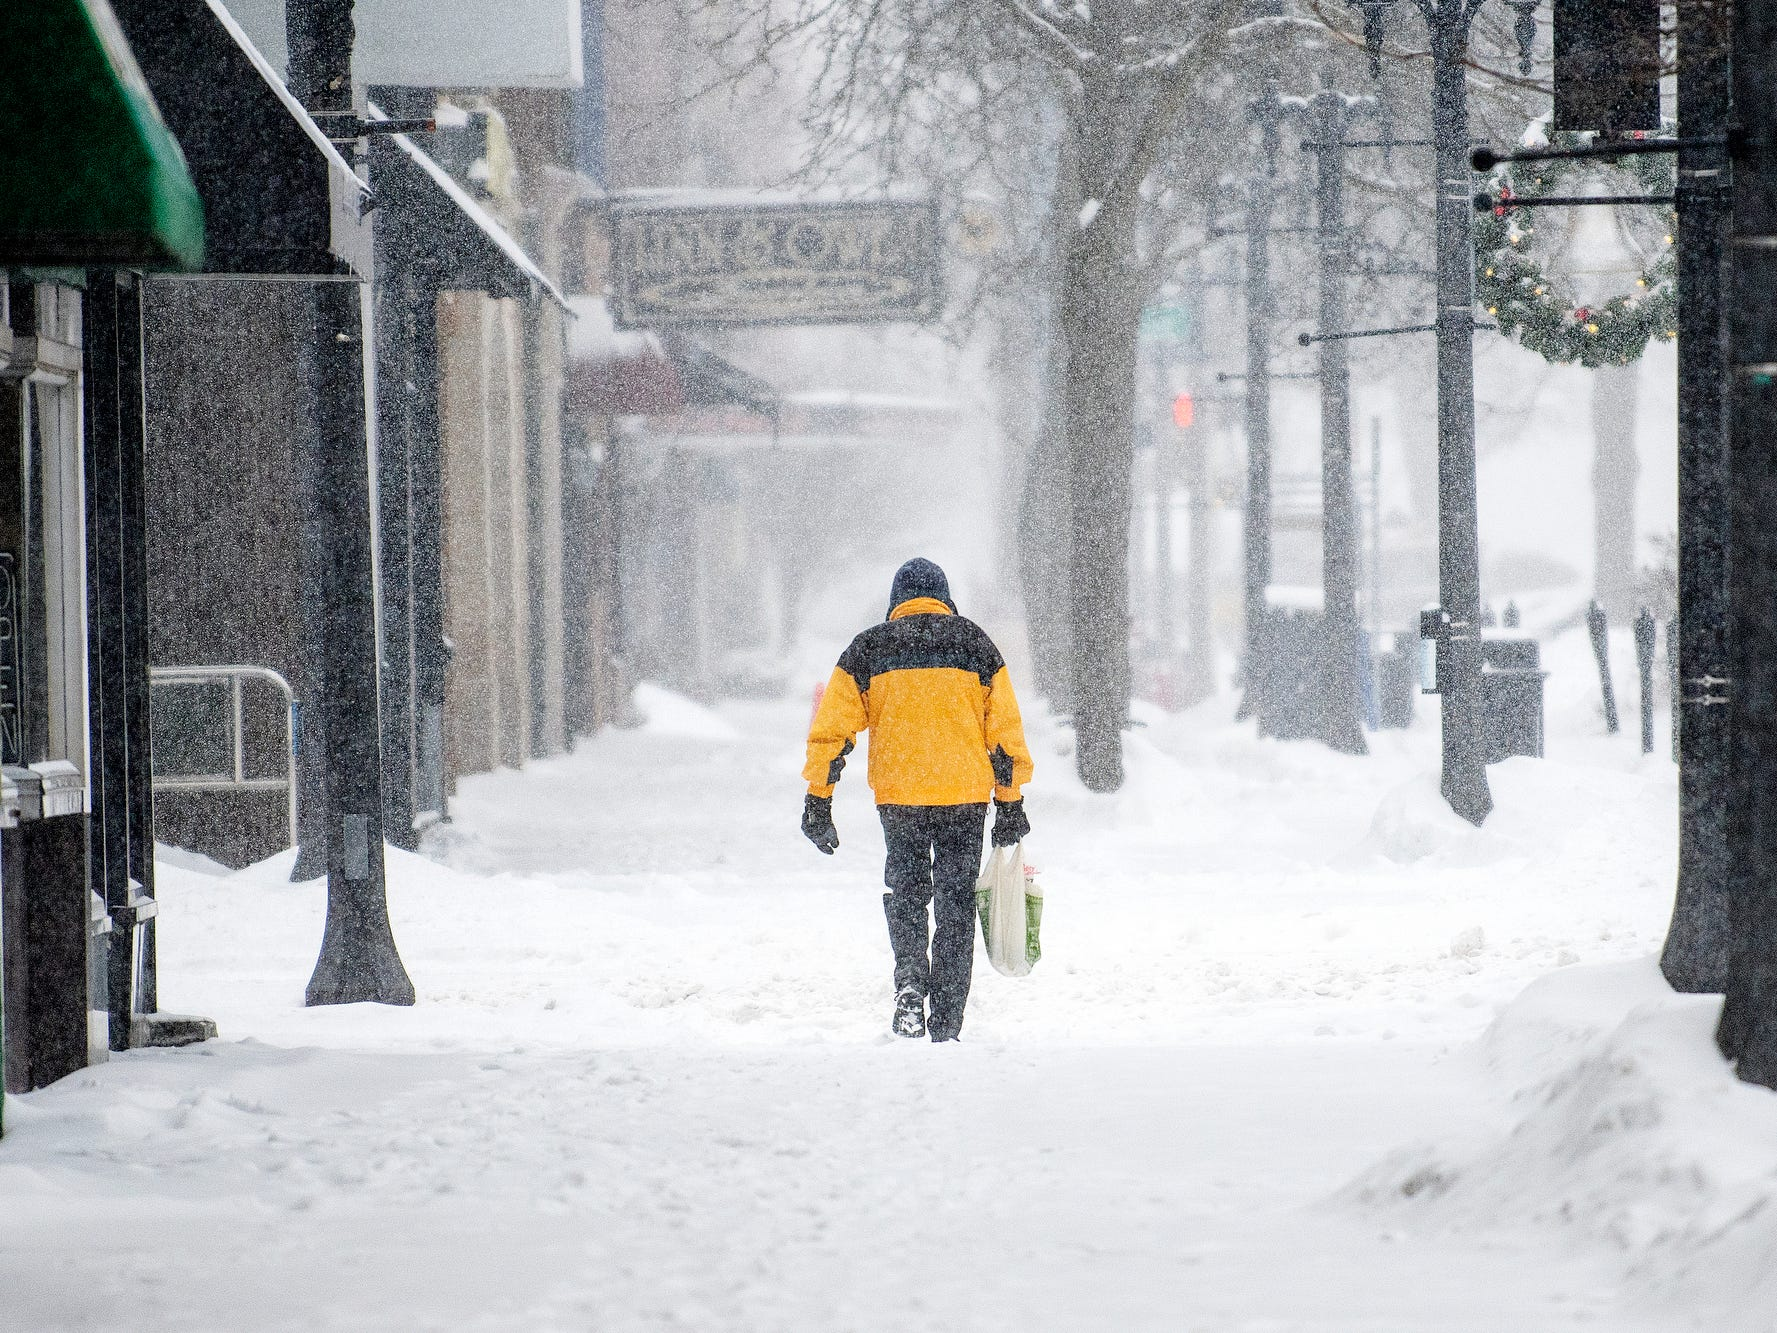 A pedestrian walks through the snow on Washington Square on Monday, Jan. 28, 2019, in Lansing. A major snow storm hit the region Monday and will be followed by days of bitter, life-threatening cold.